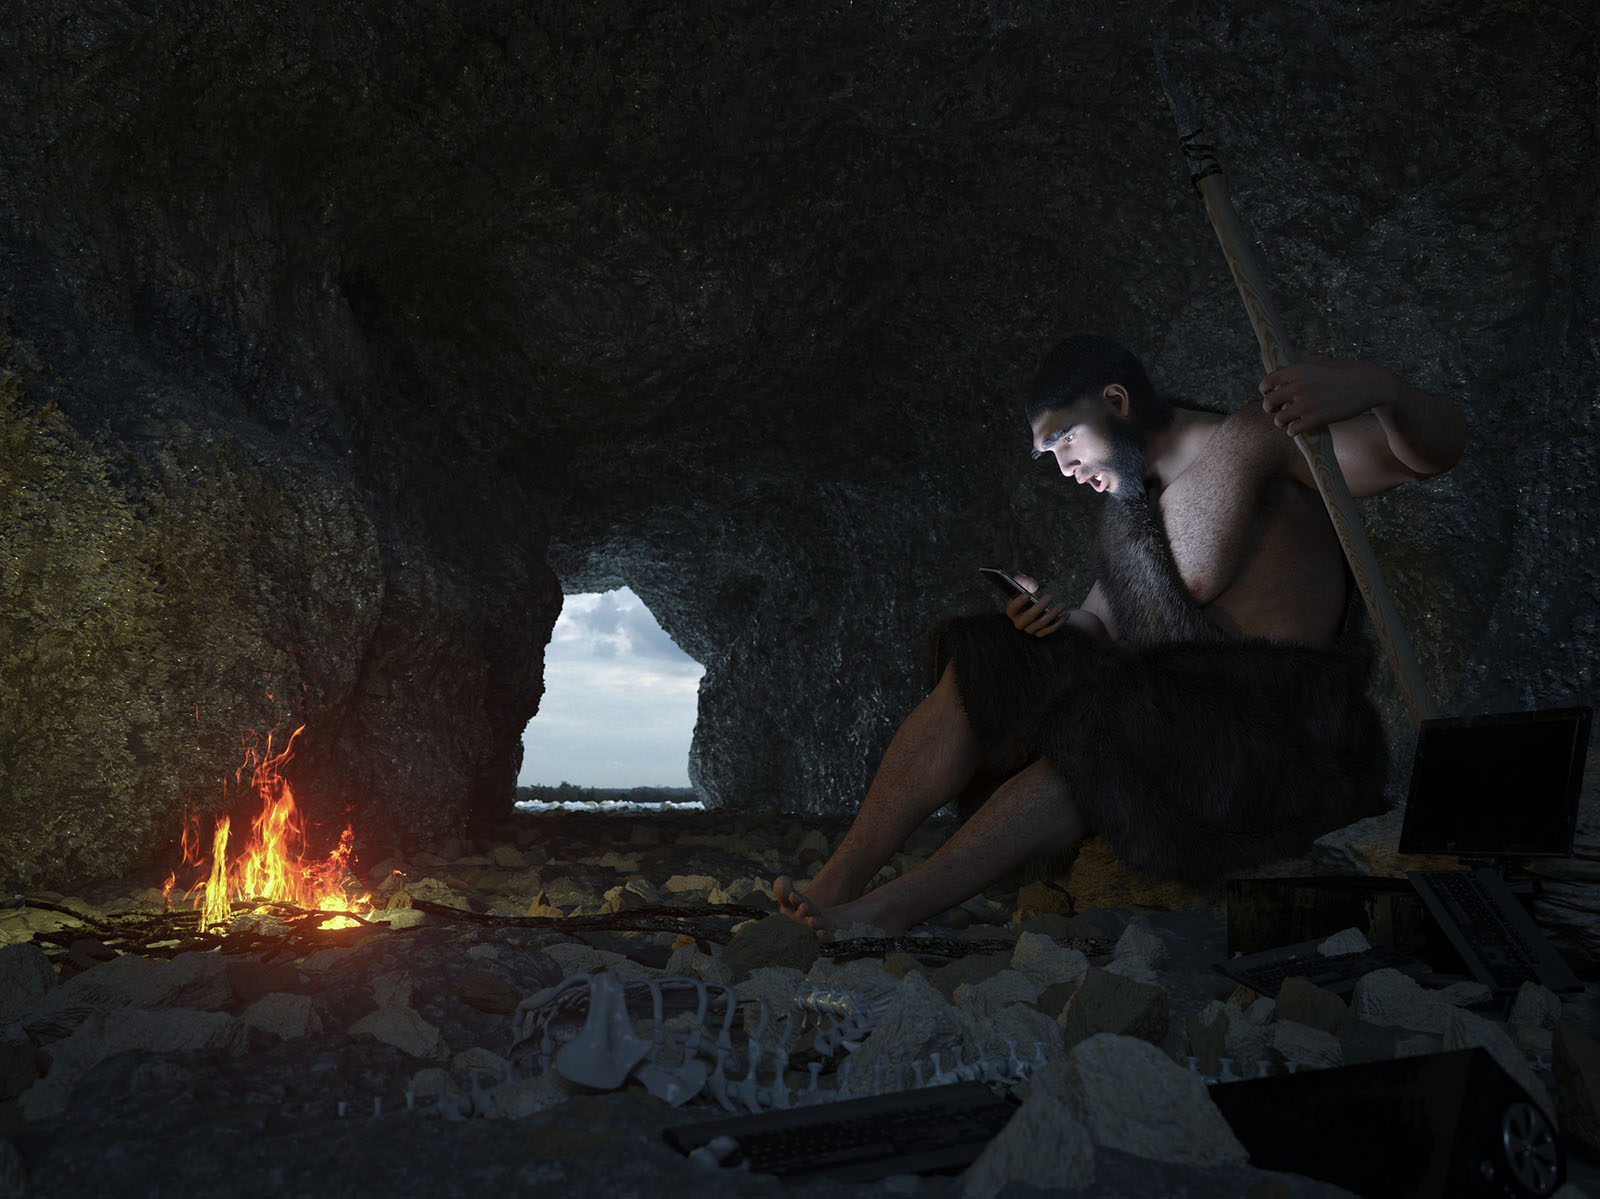 Were Neanderthals People, Too? A Response to Jon Mooallem